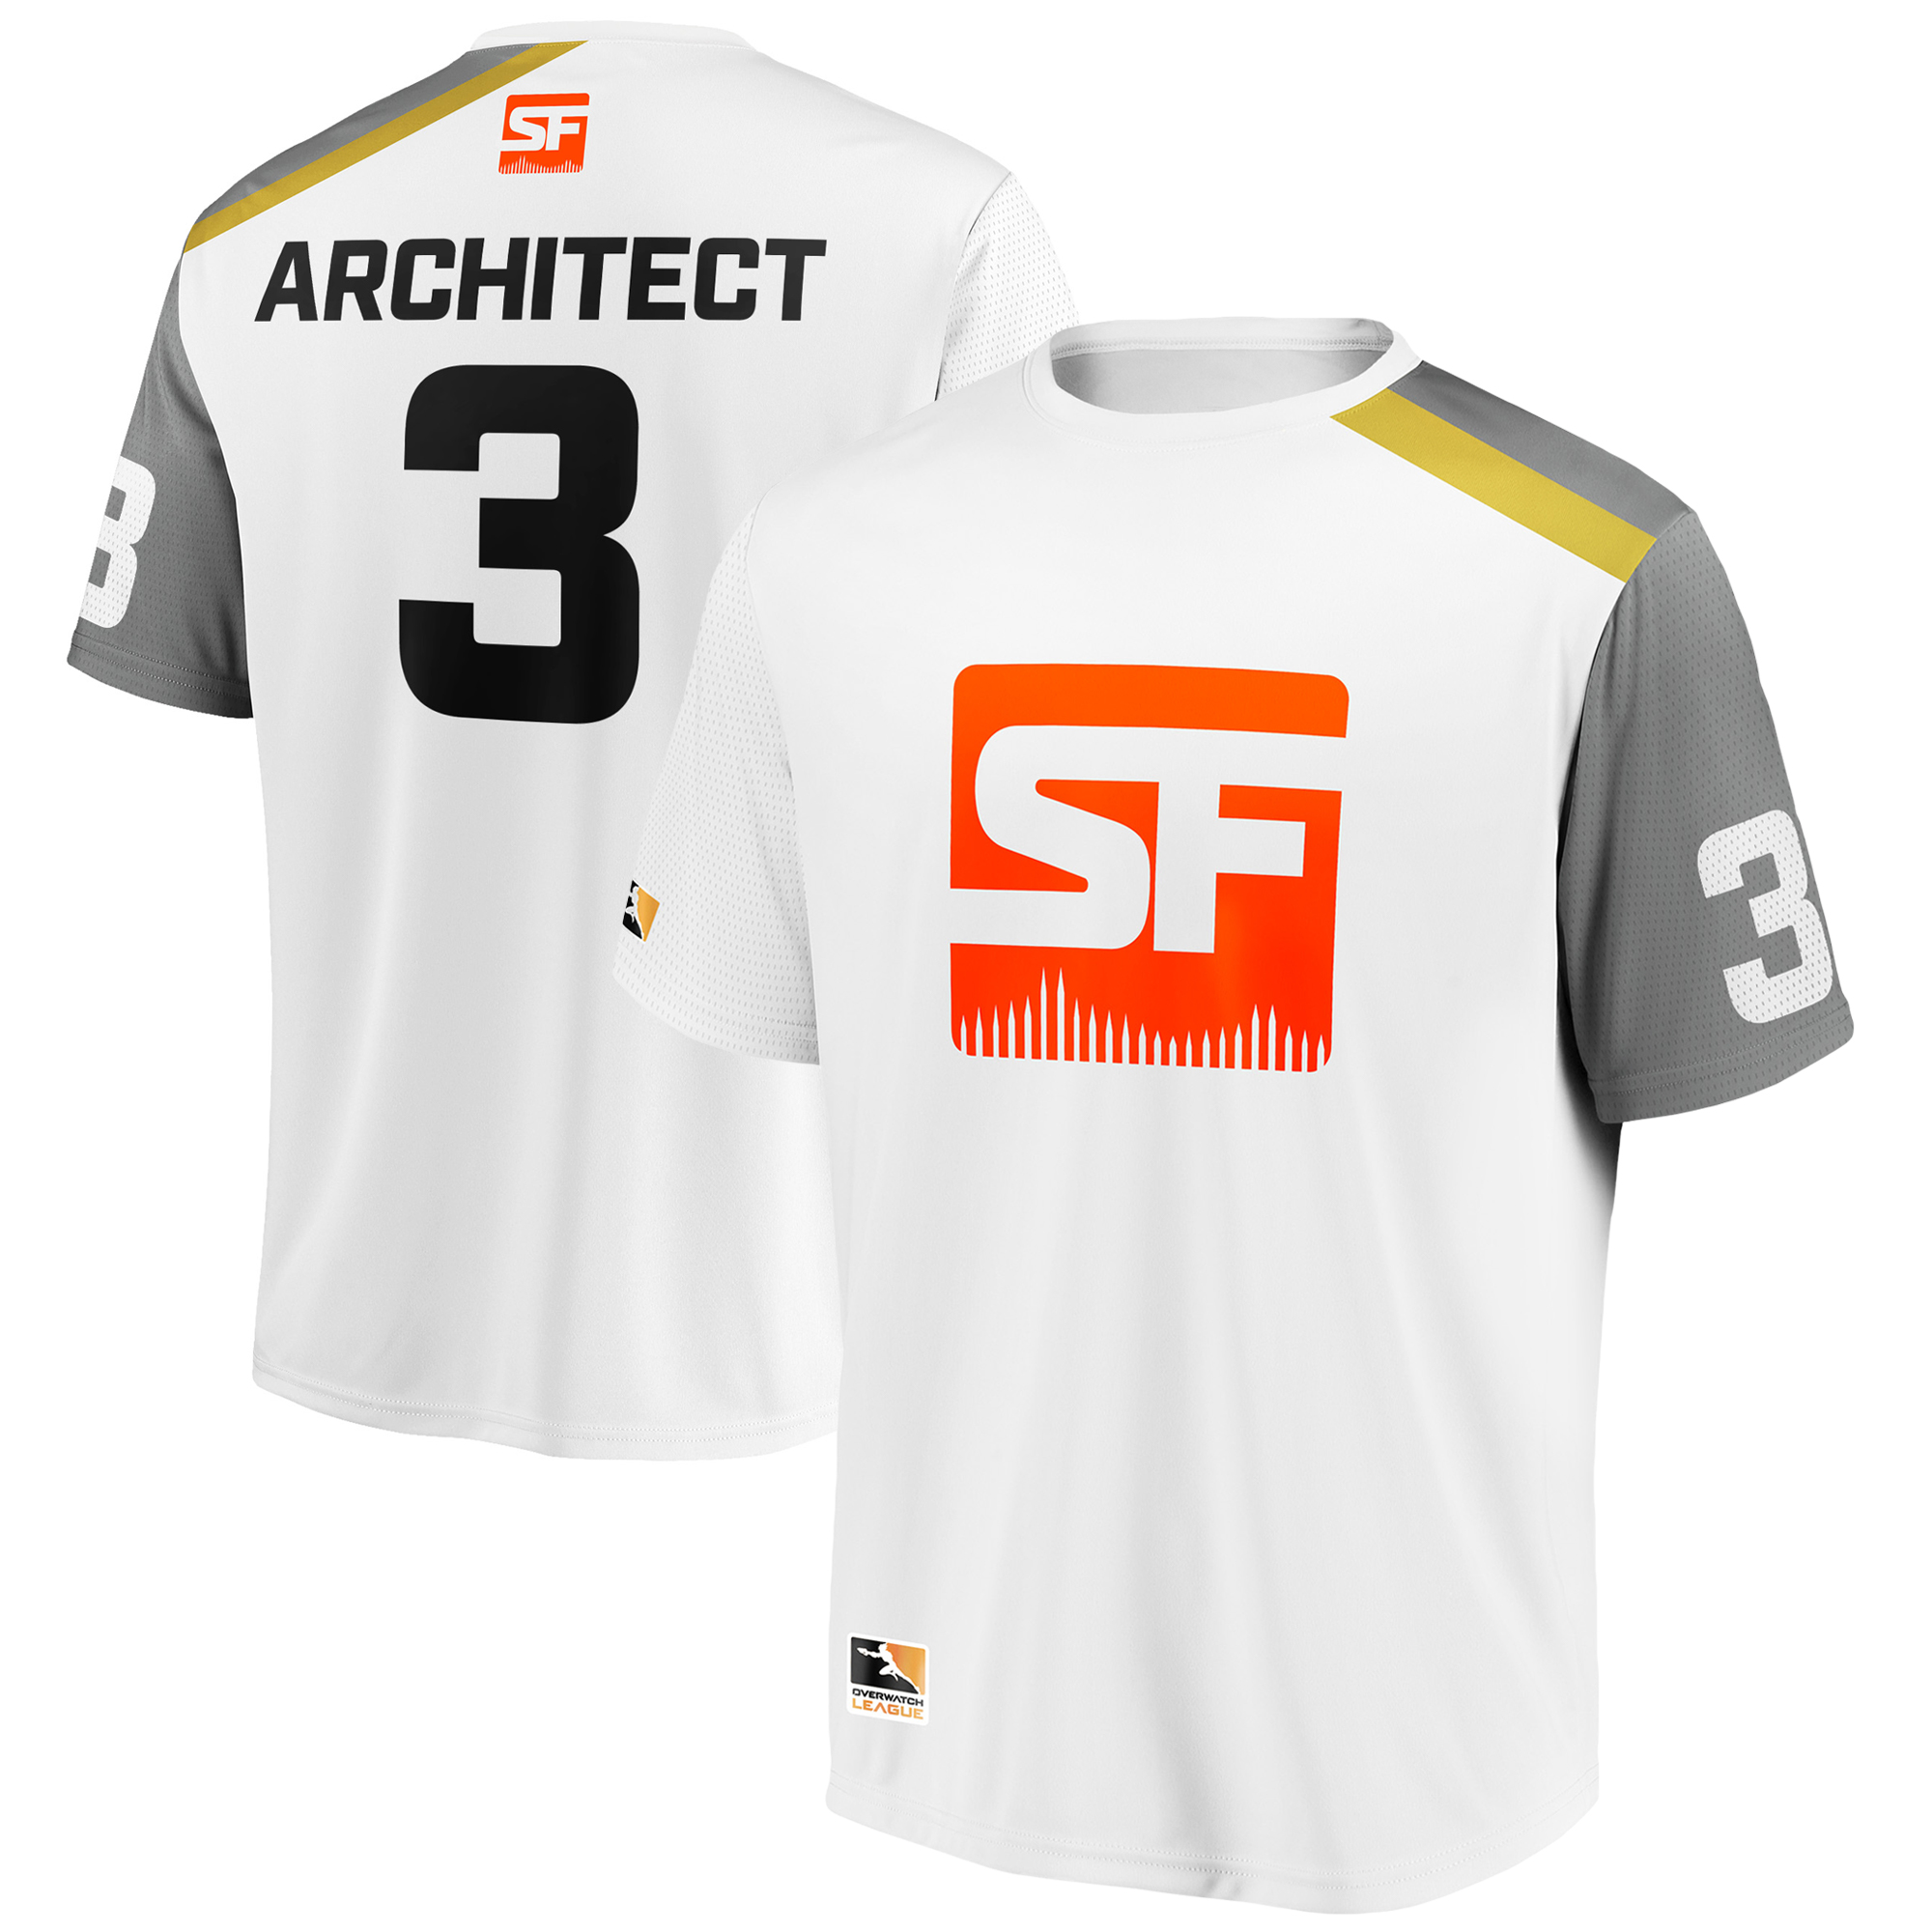 Architect San Francisco Shock Overwatch League Replica Away Jersey - White